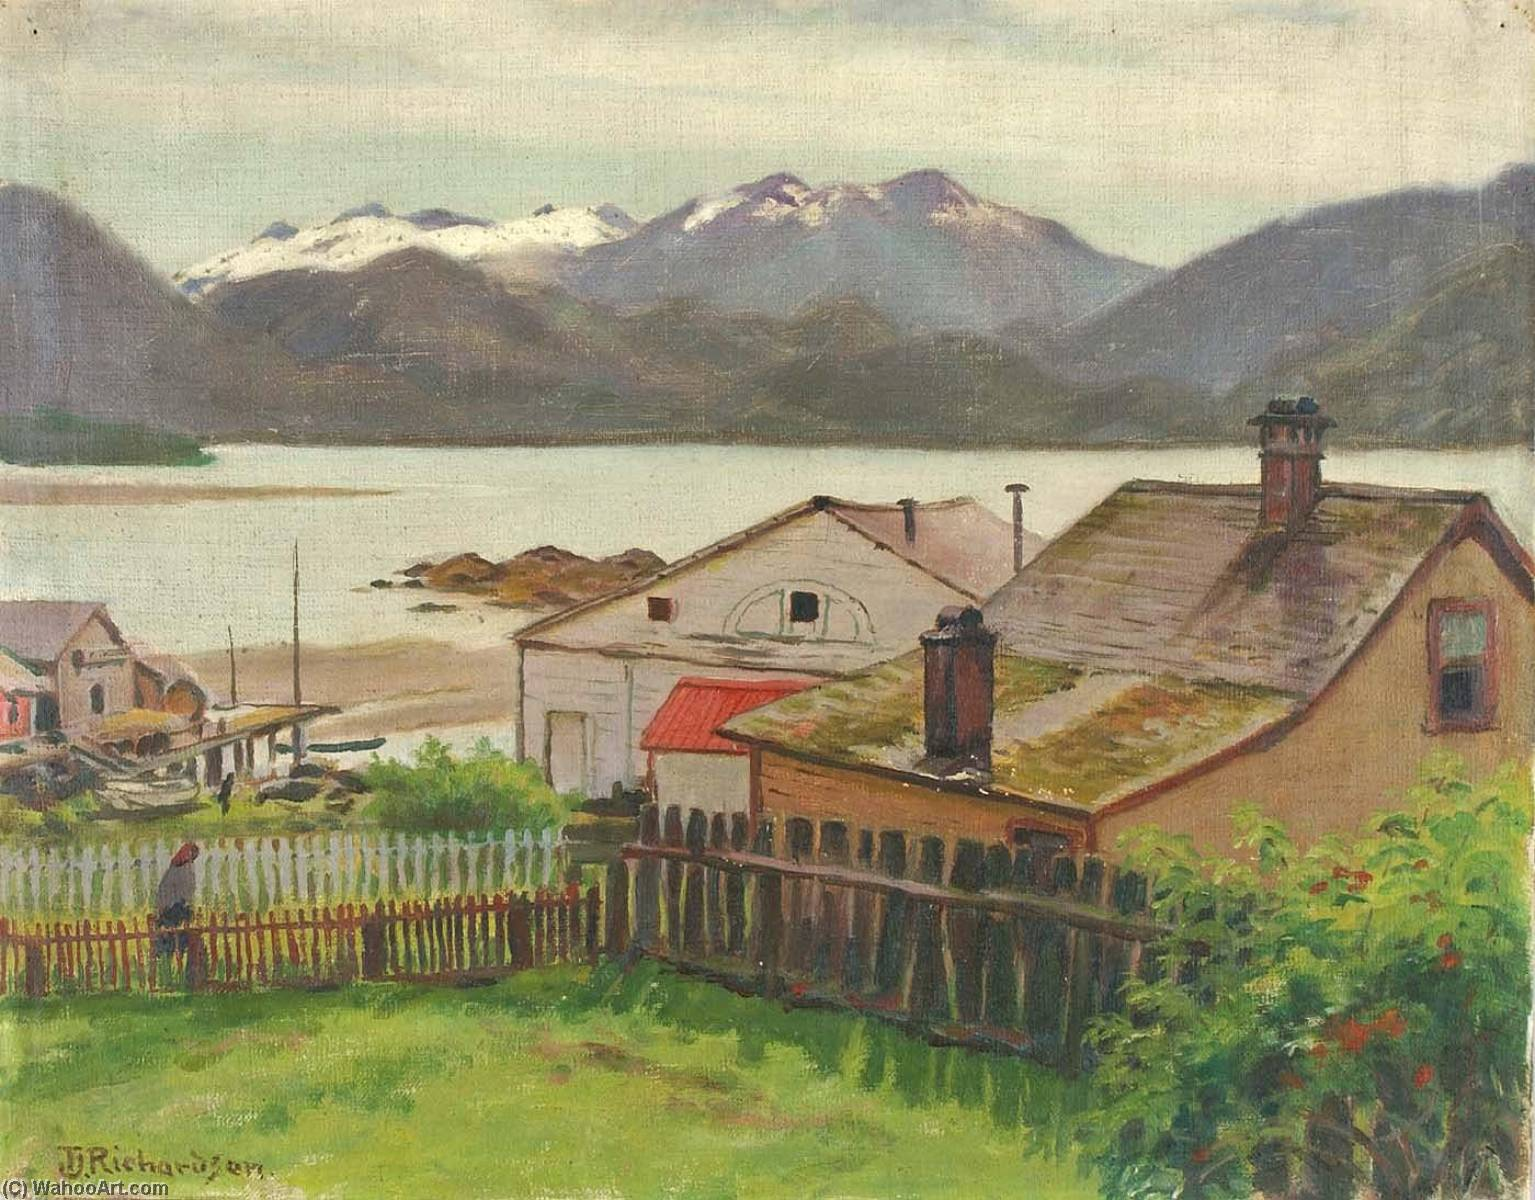 In the Old Quarter, Sitka, 1900, 1900 by Theodore J. Richardson | Paintings Reproductions Theodore J. Richardson | WahooArt.com